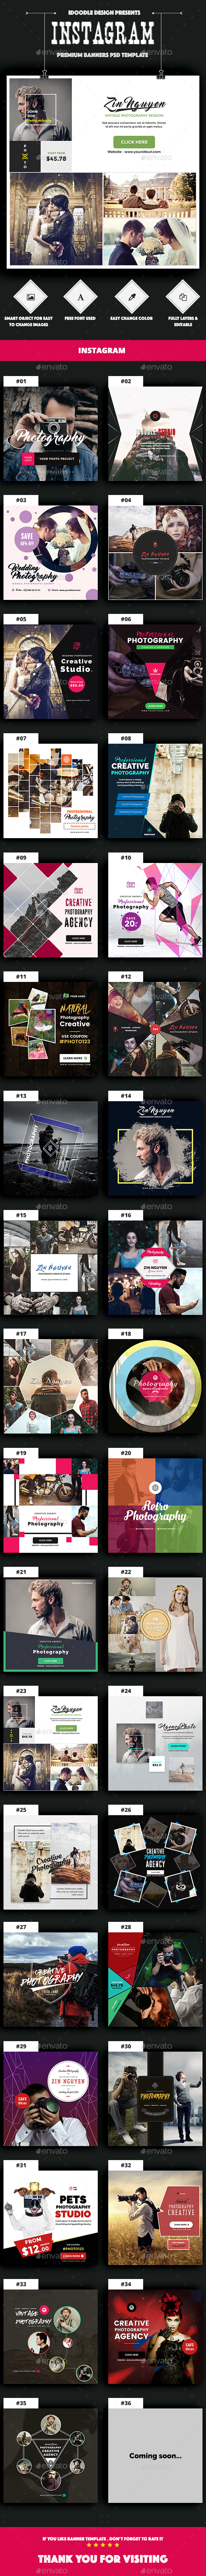 Photography Instagram Banners Ads -35 PSD [Update New Size] - Social Media Web Elements